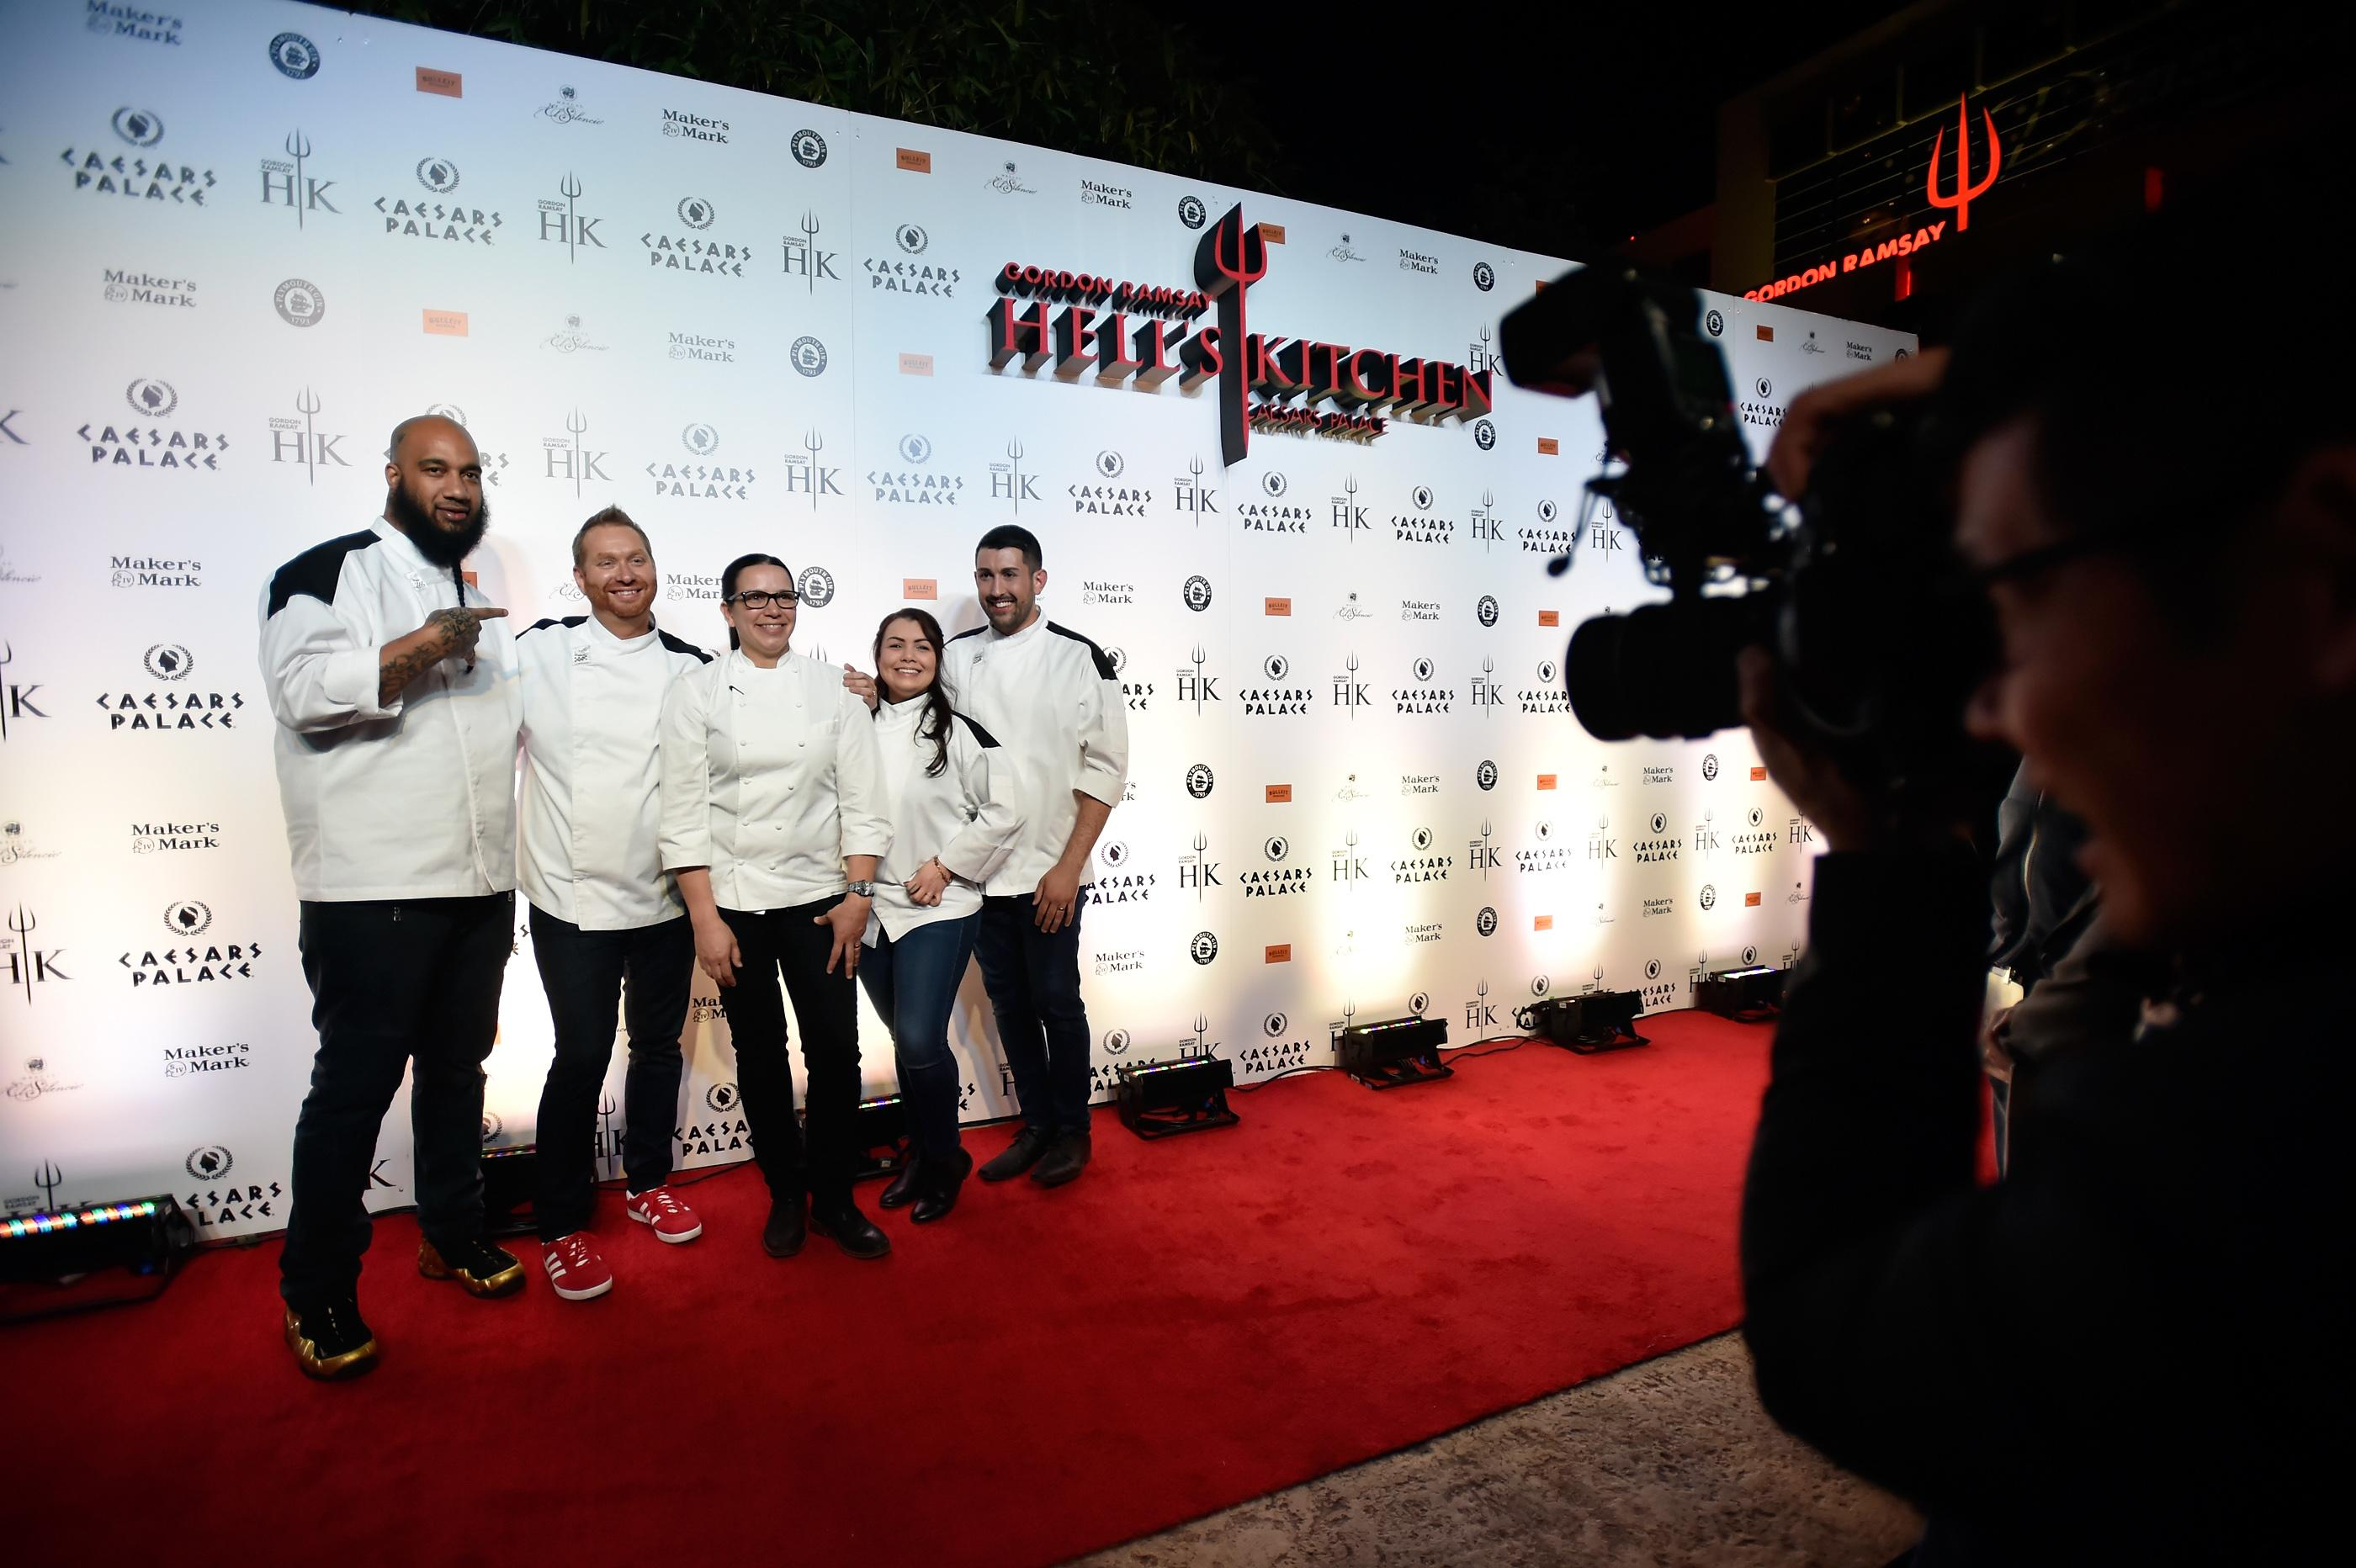 From left, Hell's Kitchen season 17 finalists Emili Medley, Benjamin Knack, Hell's Kitchen season 10 winner Christina Wilson and Hell's Kitchen season 17 finalists Michelle Tribble and Nick Bond pose on the grand opening red carpet of Gordon Ramsay Hell's Kitchen at Caesars Palace Friday, Jan. 26, 2018, in Las Vegas. CREDIT: David Becker/Las Vegas News Bureau